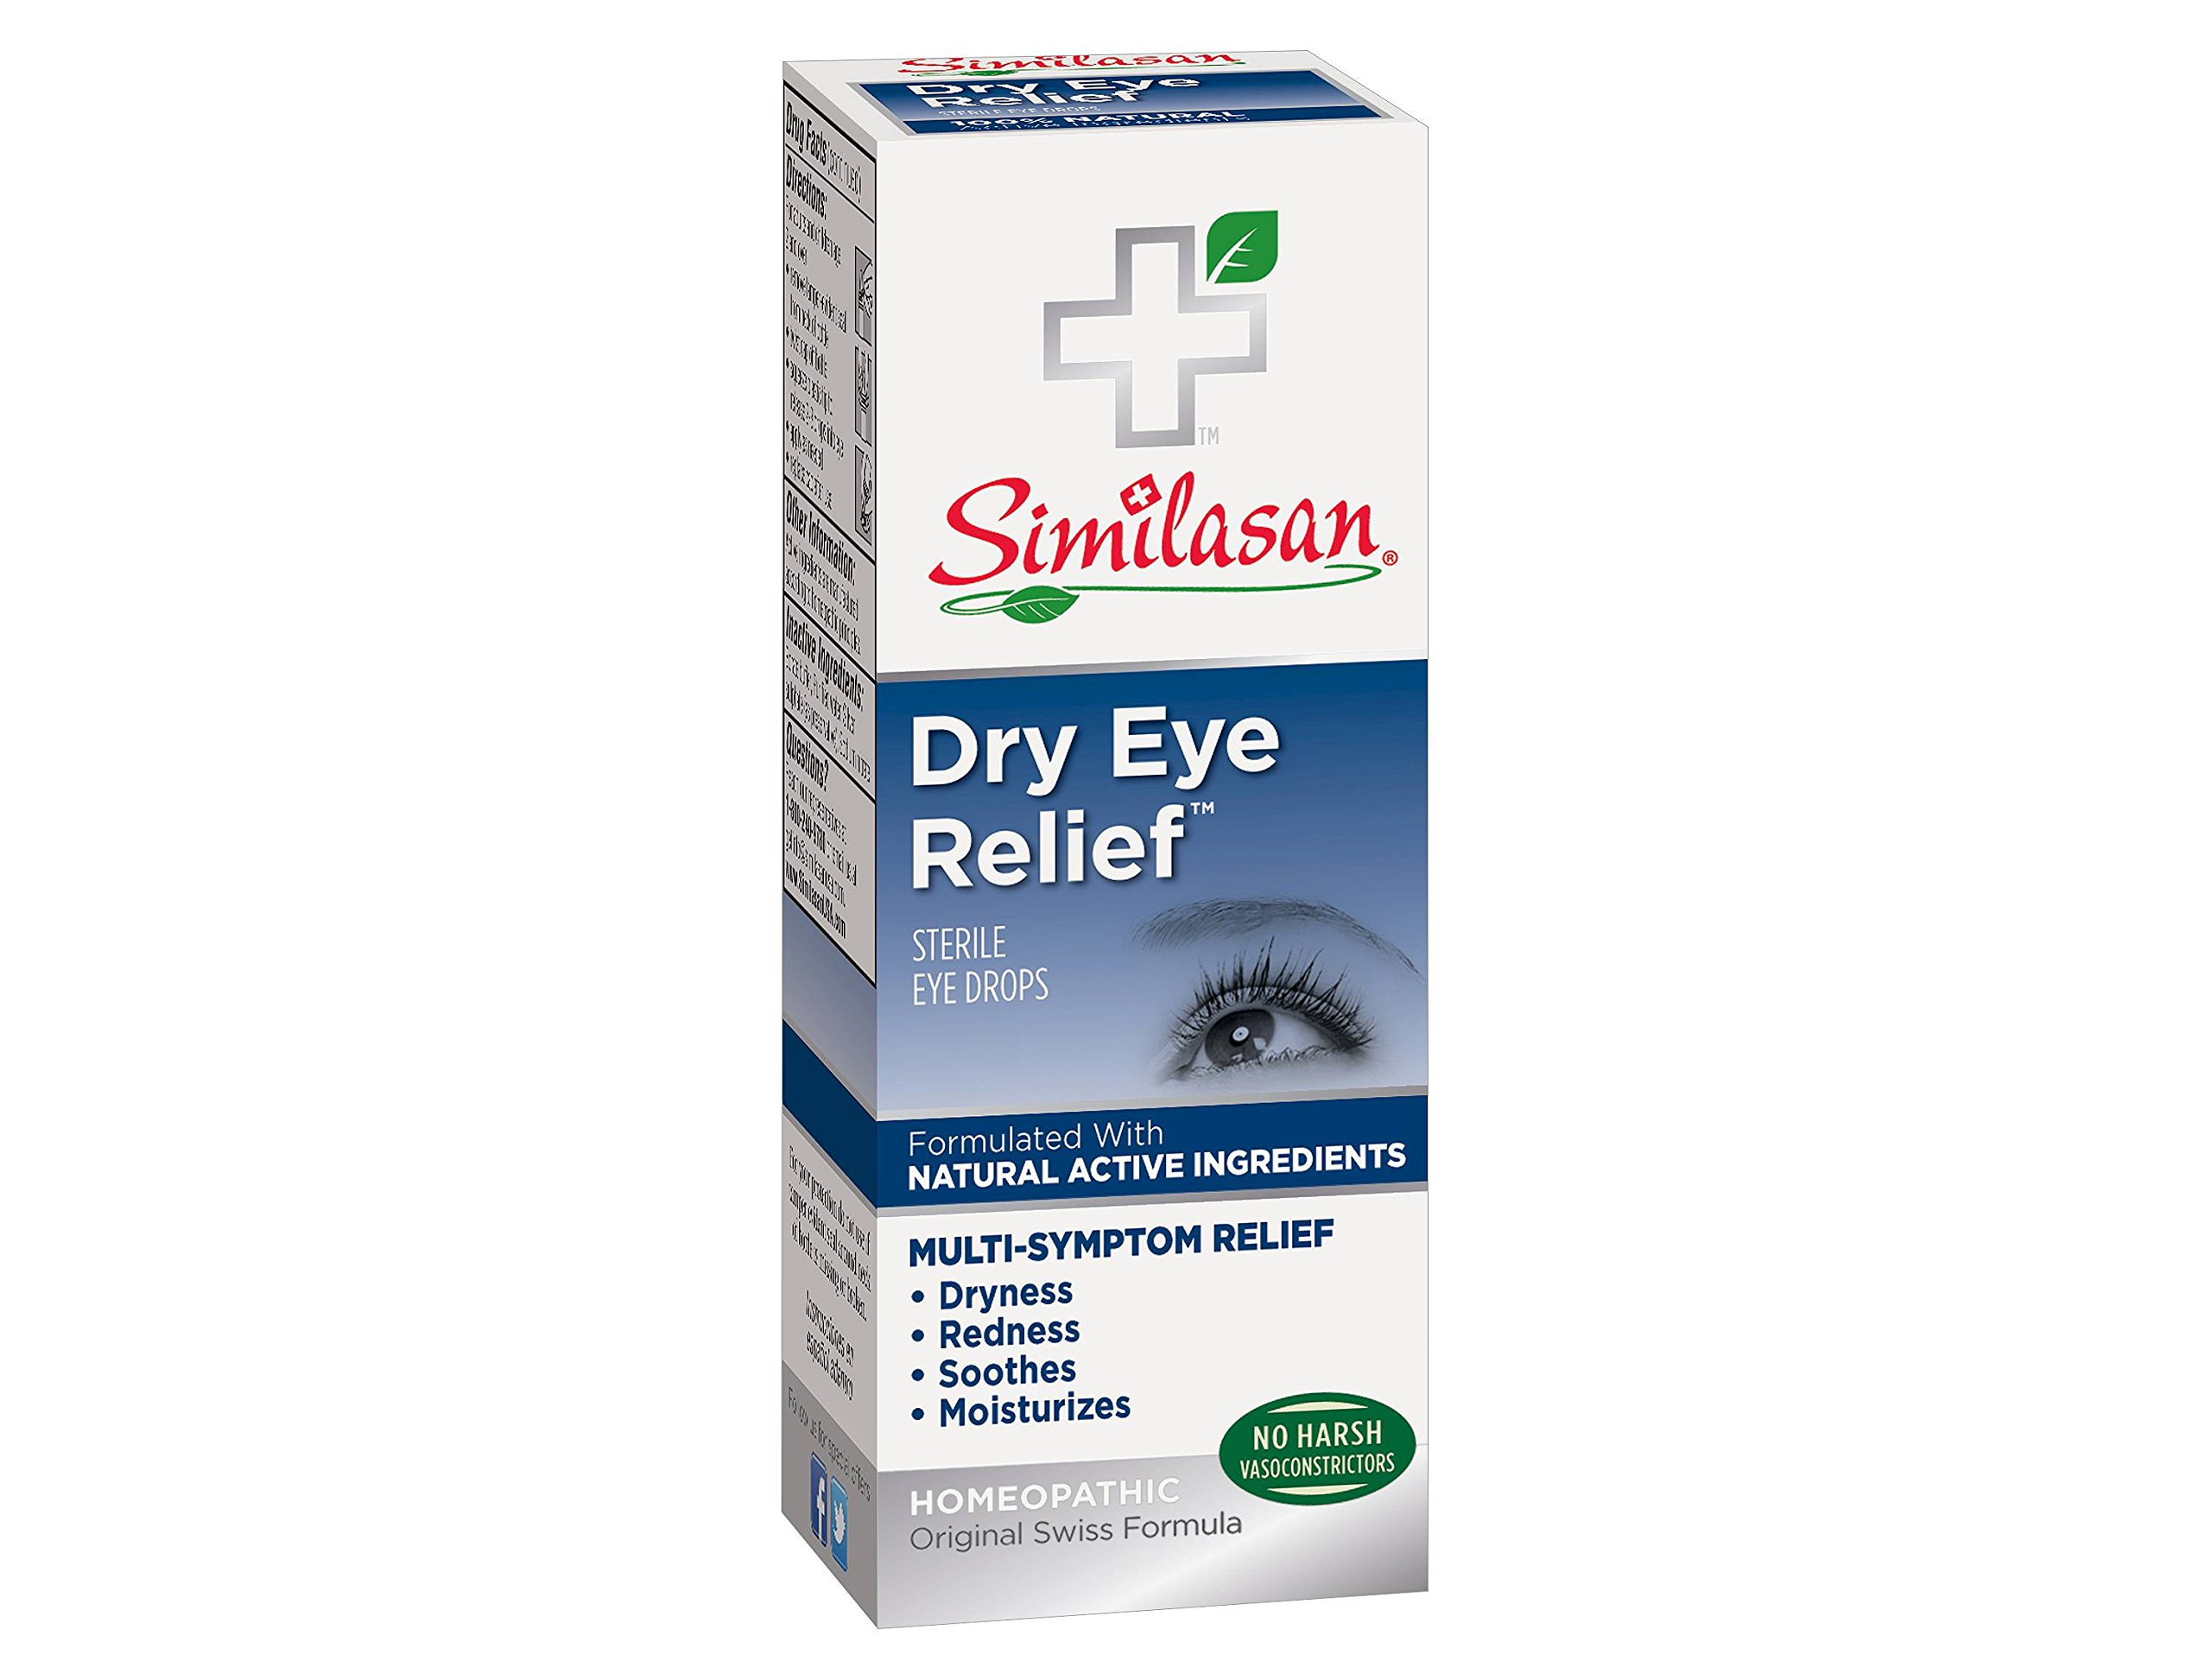 Similasan Dry Eye Relief Eye Drops, Speciial 6 Paack ( 0.33 Ounce each )